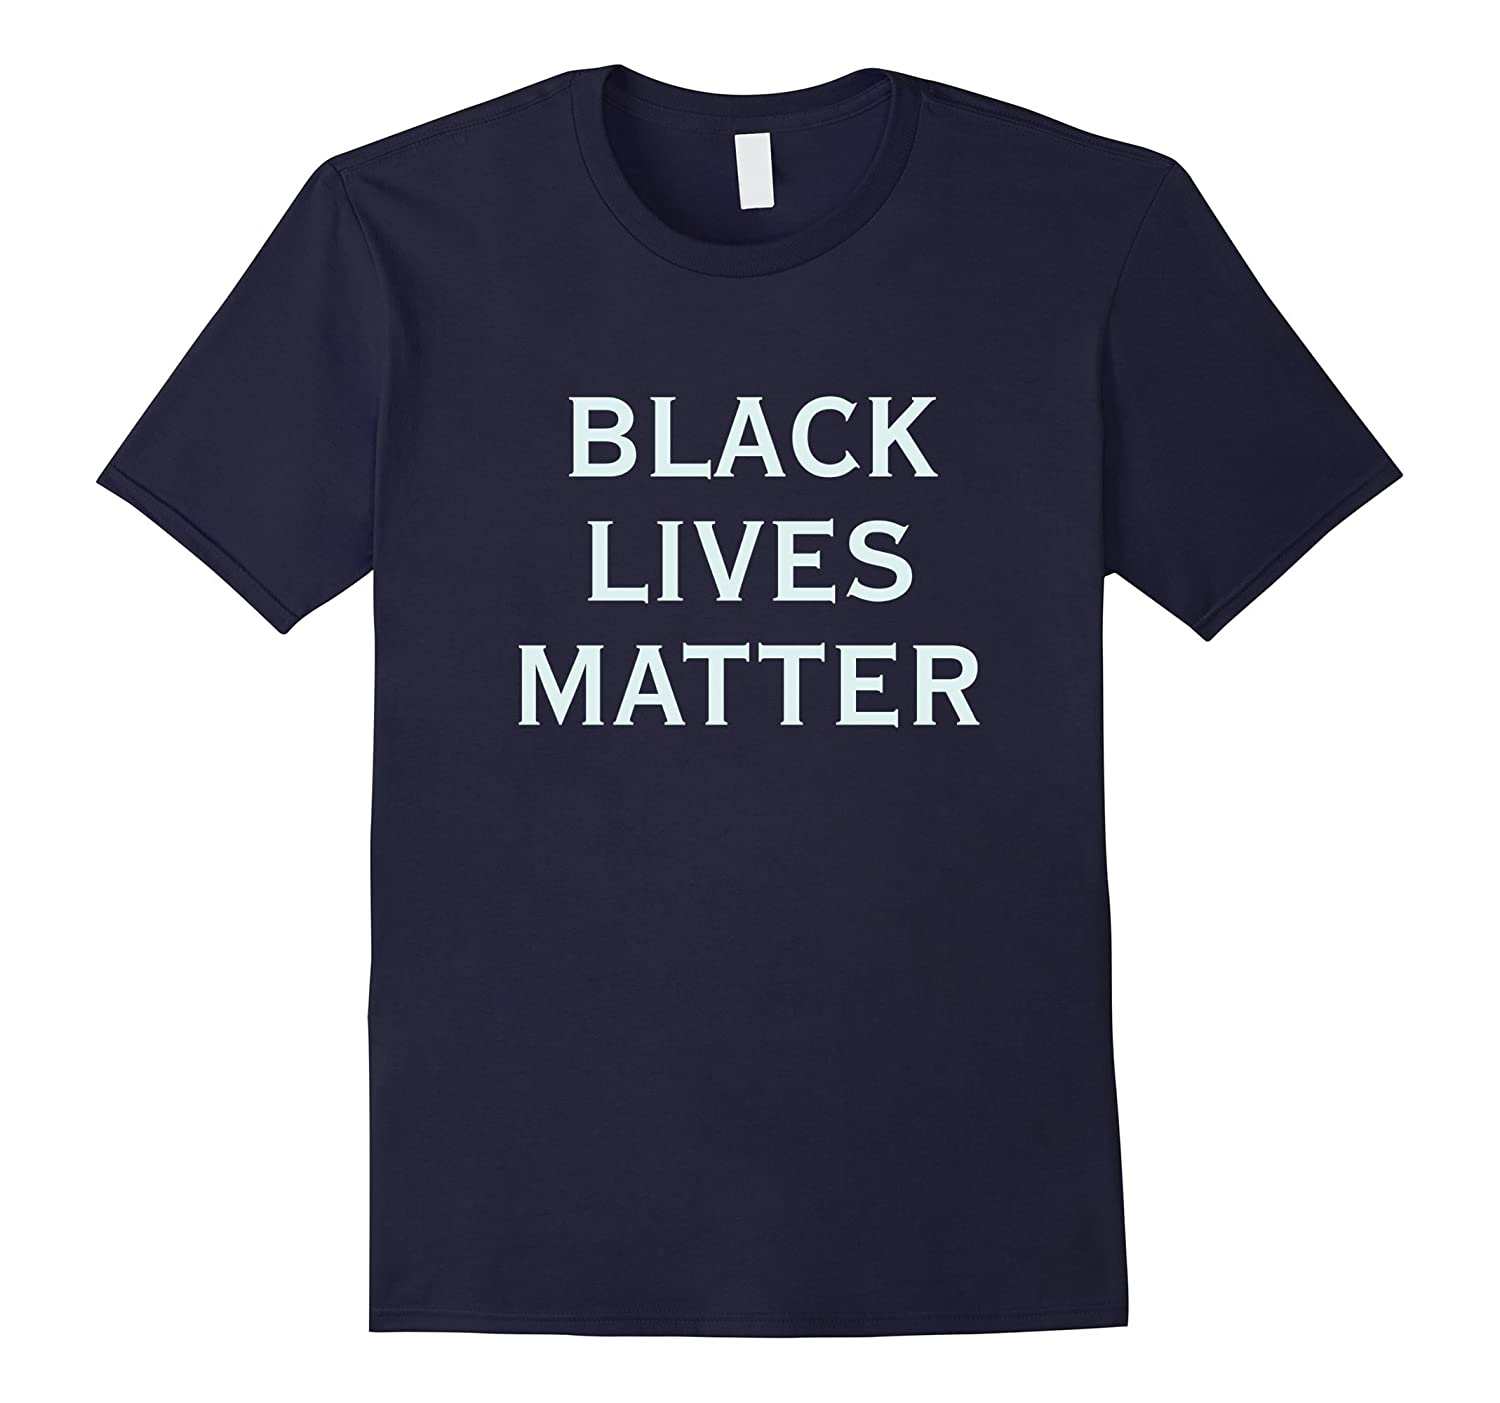 Black Lives Matter T-Shirt - Mens Womens  Kids v1-CD